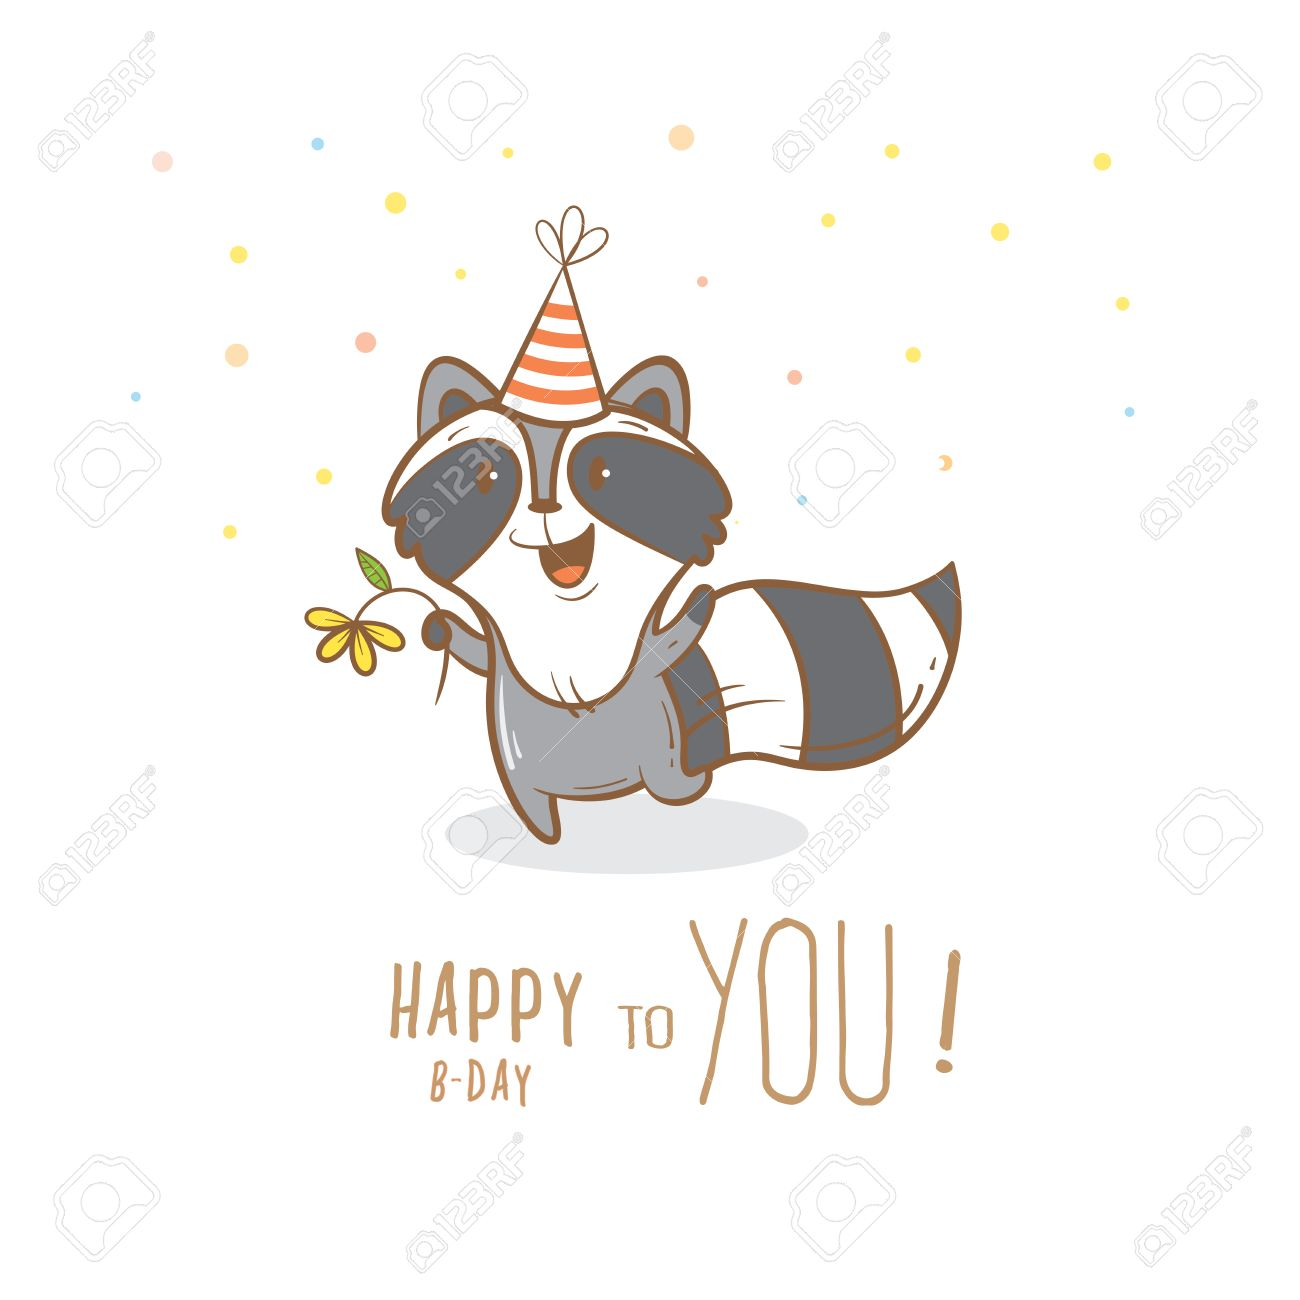 Birthday Card With Cute Cartoon Raccoon In Party Hat Little Funny Animal Childrens Illustration